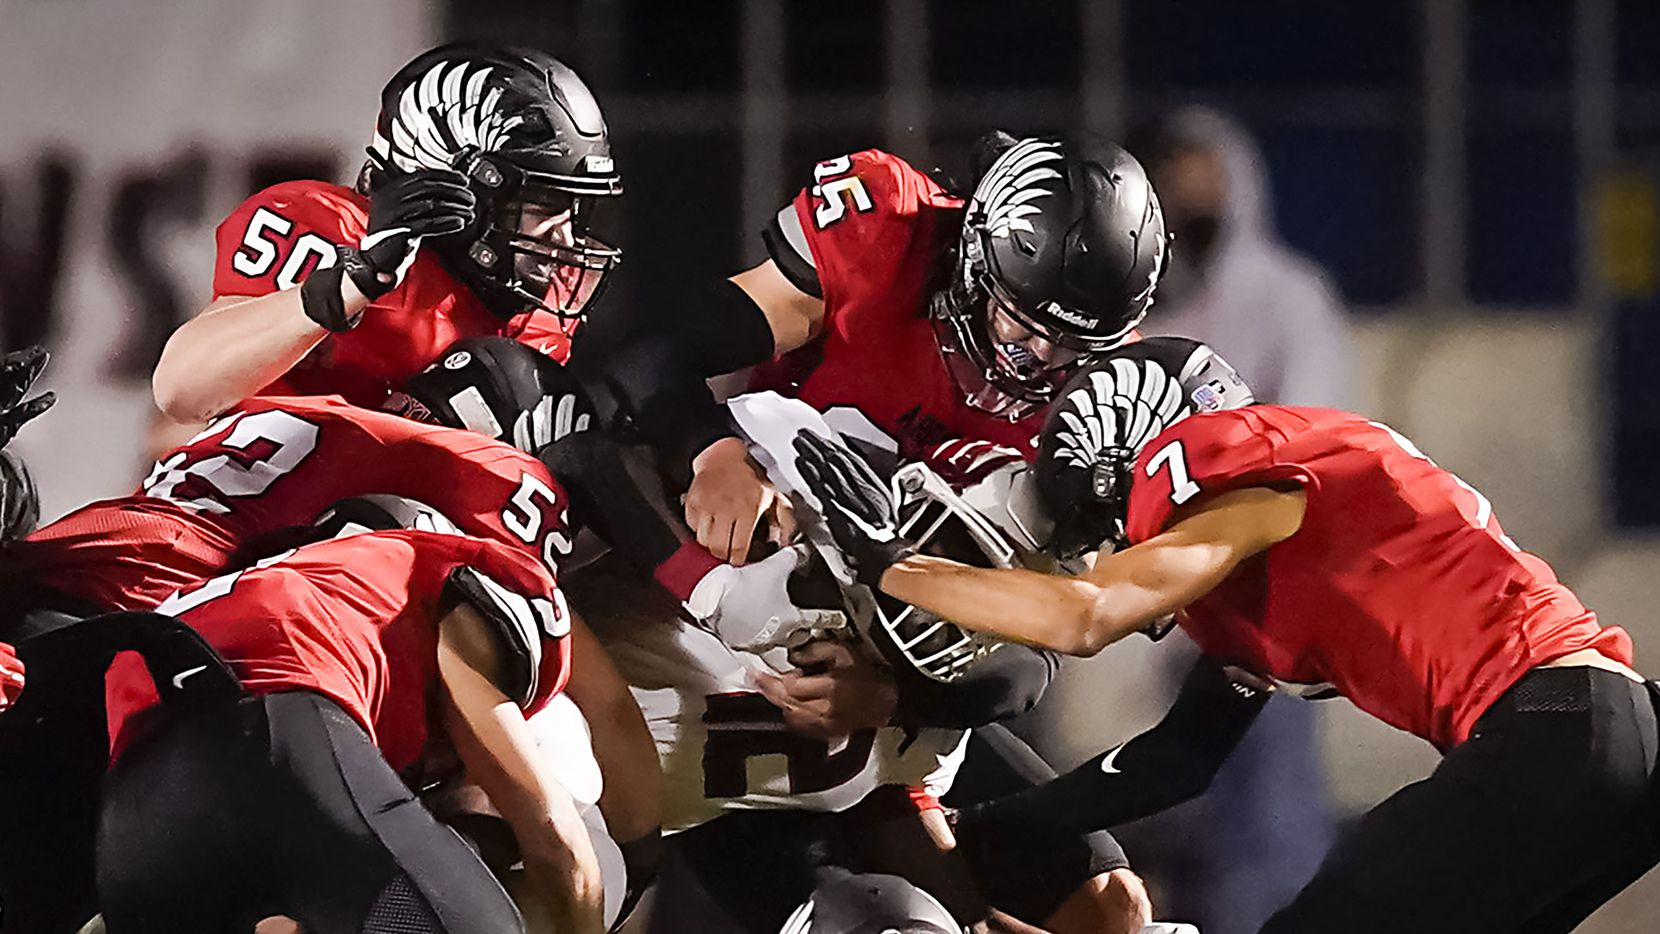 Melissa running back Ashton Mitchell-Johnson (12) is brought down by the Argyle defense during the first half of a high school football game on Friday, Oct. 2, 2020, in Argyle, Texas.